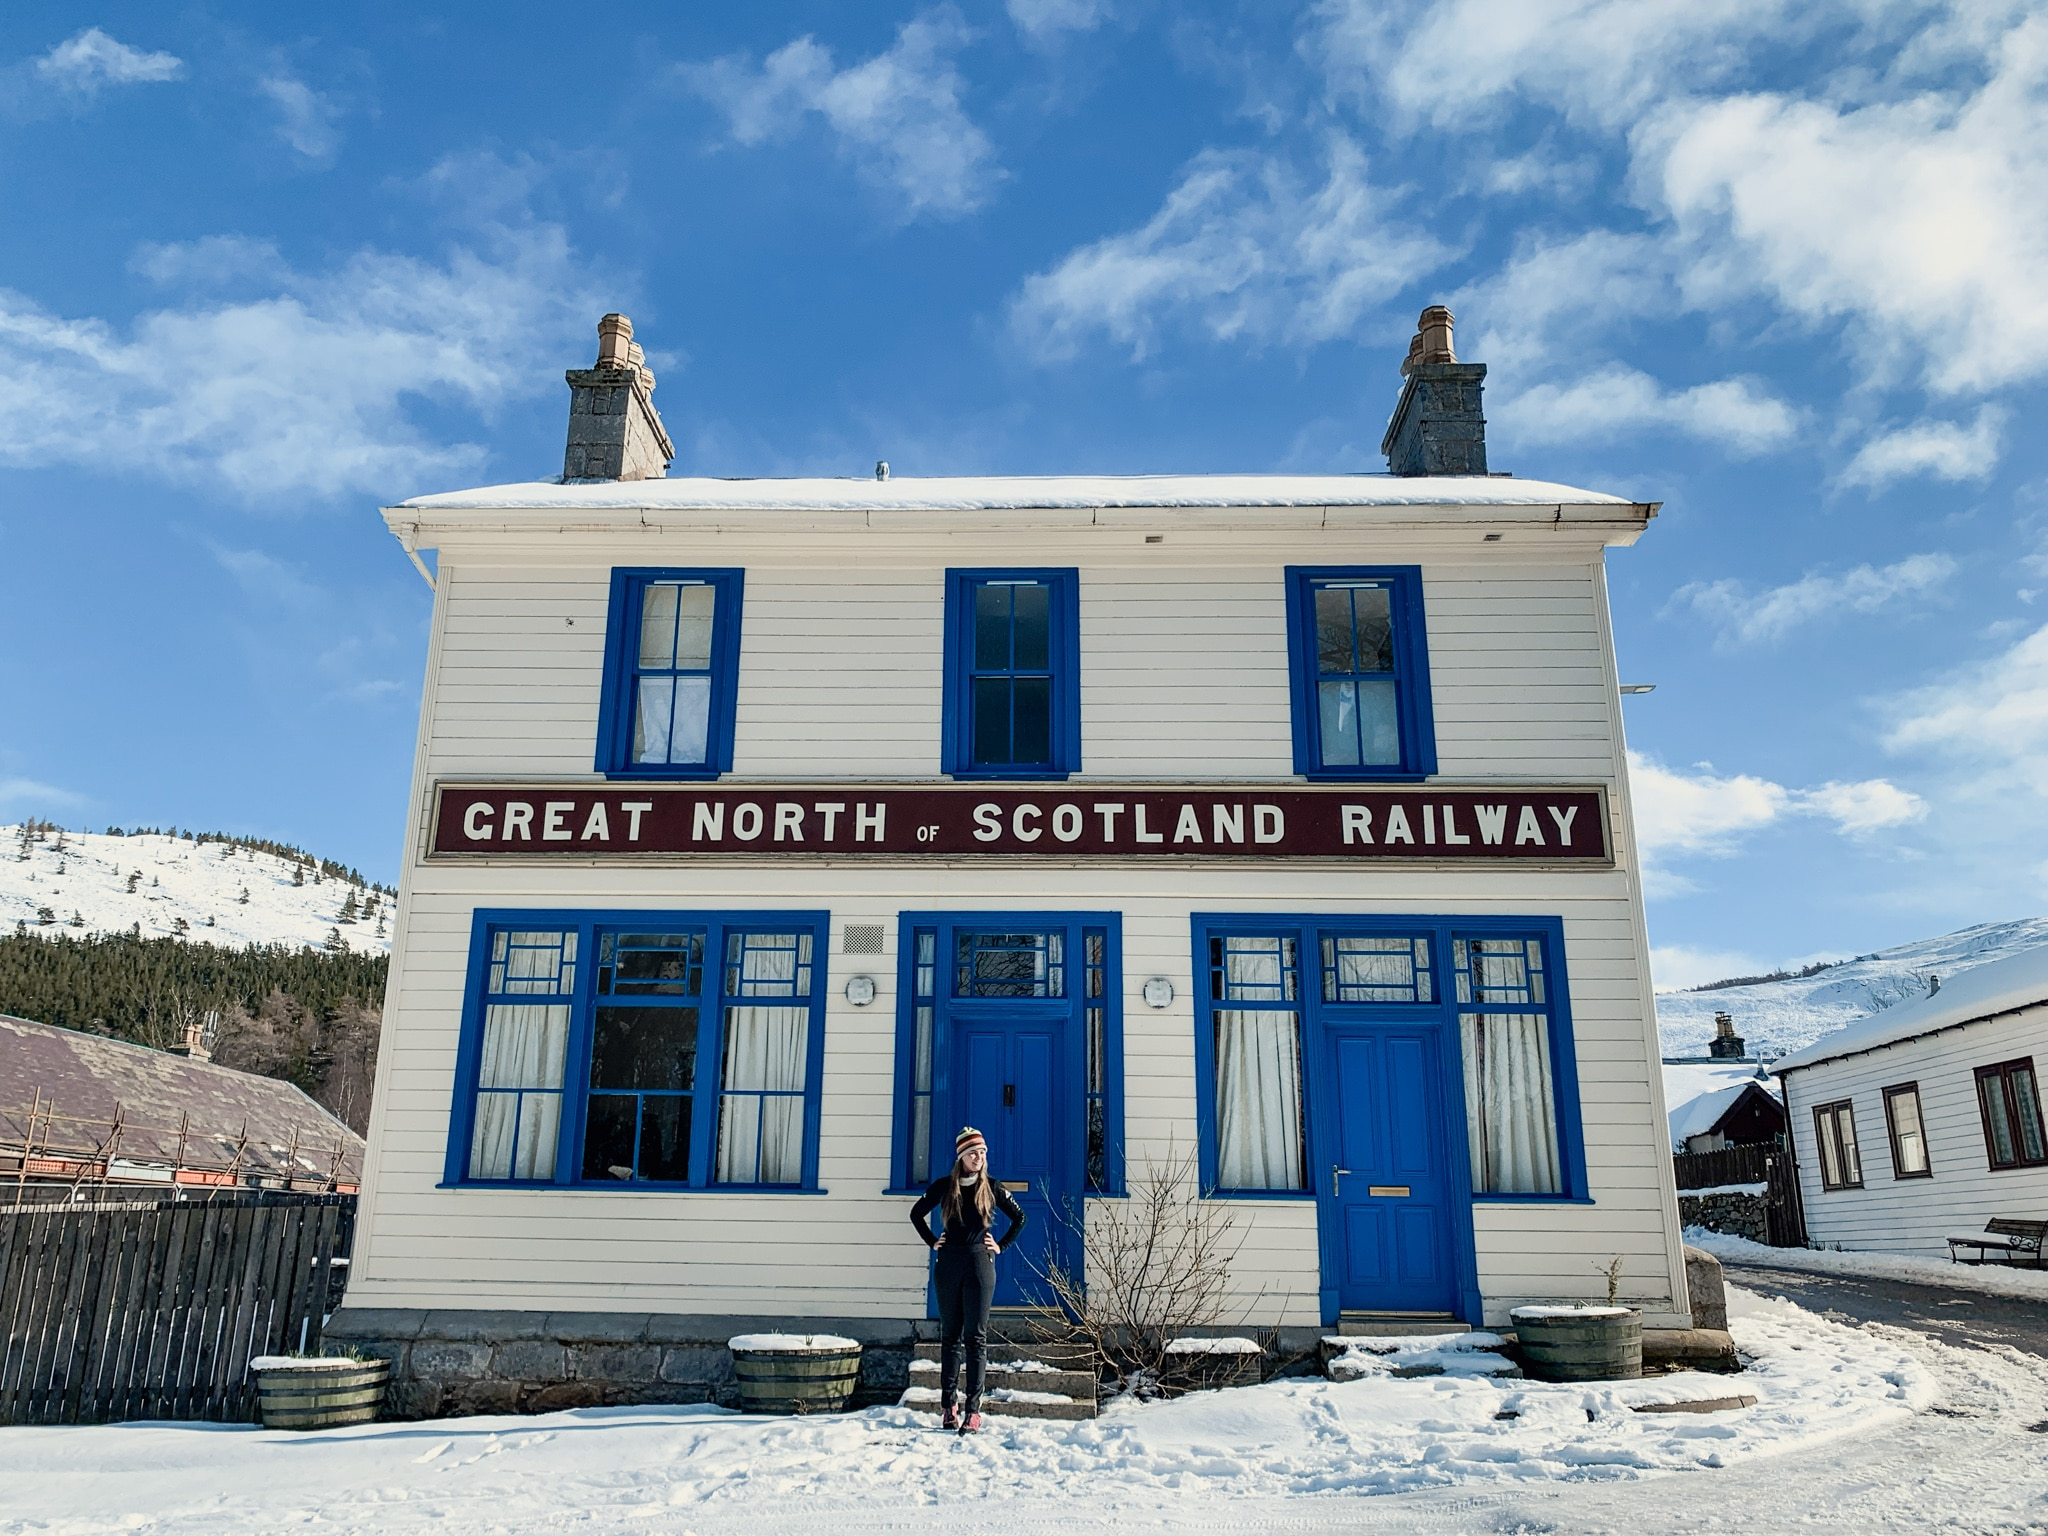 Cairngorms Nationalpark: Die SnowRoads Scenic Route in den Highlands - Bahnhof in Braemar